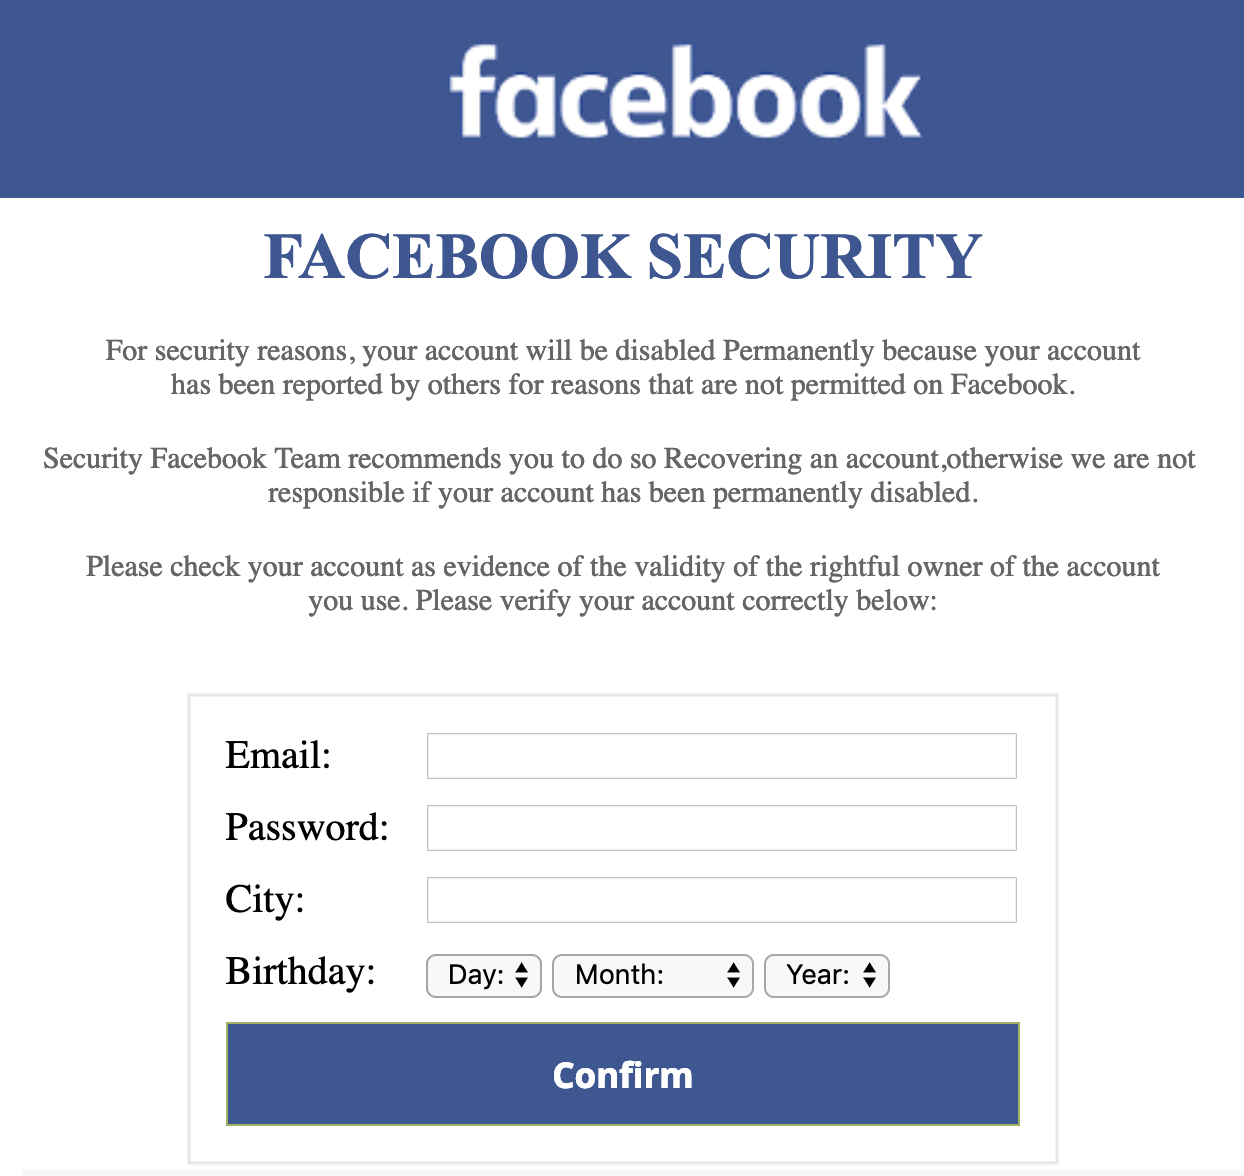 Facebook Policy Violation Warning Text Message: Legit? - Ask